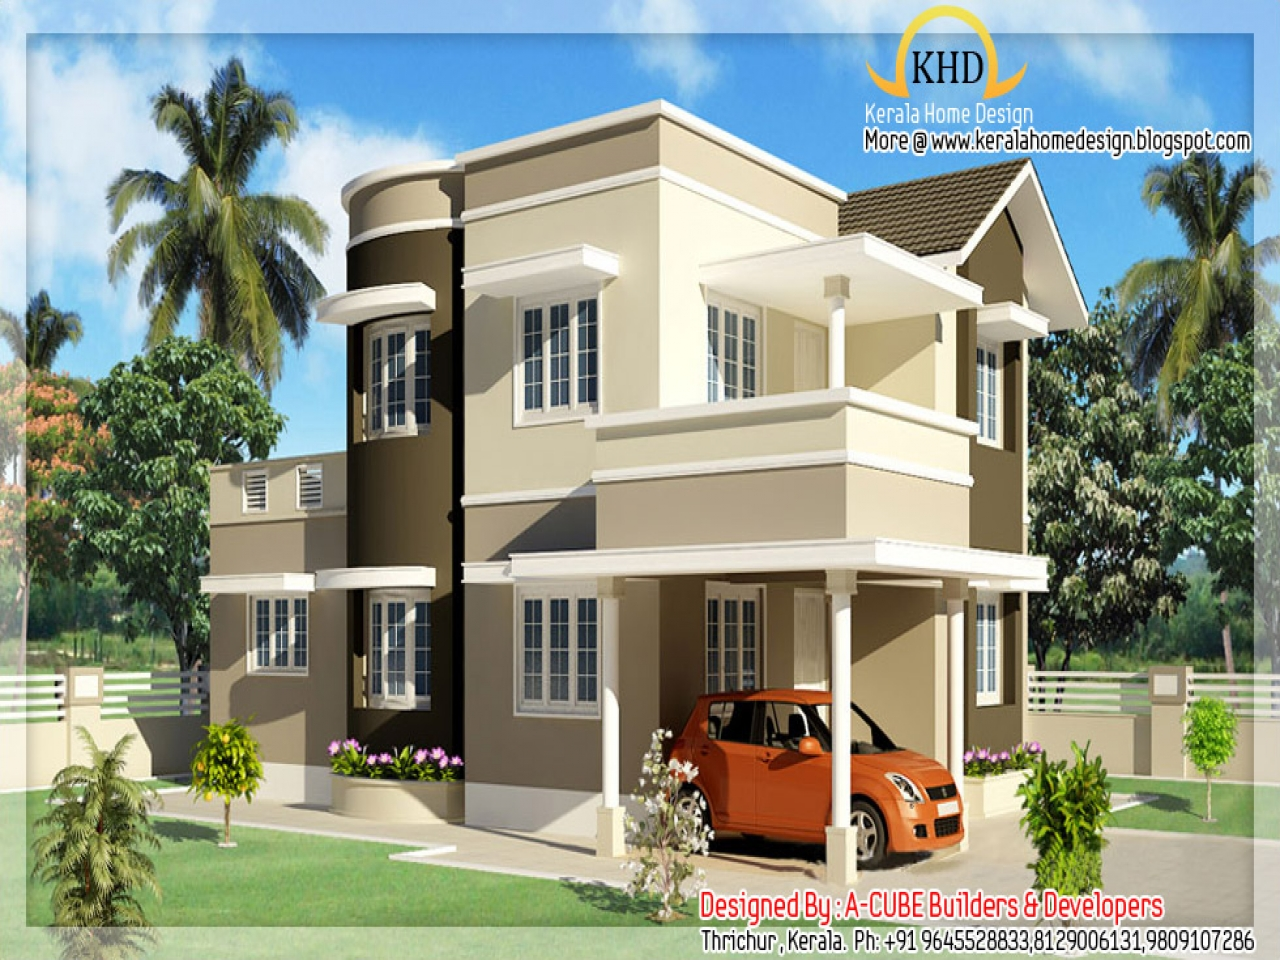 Simple duplex house design simple duplex house design for Duplex house inside images